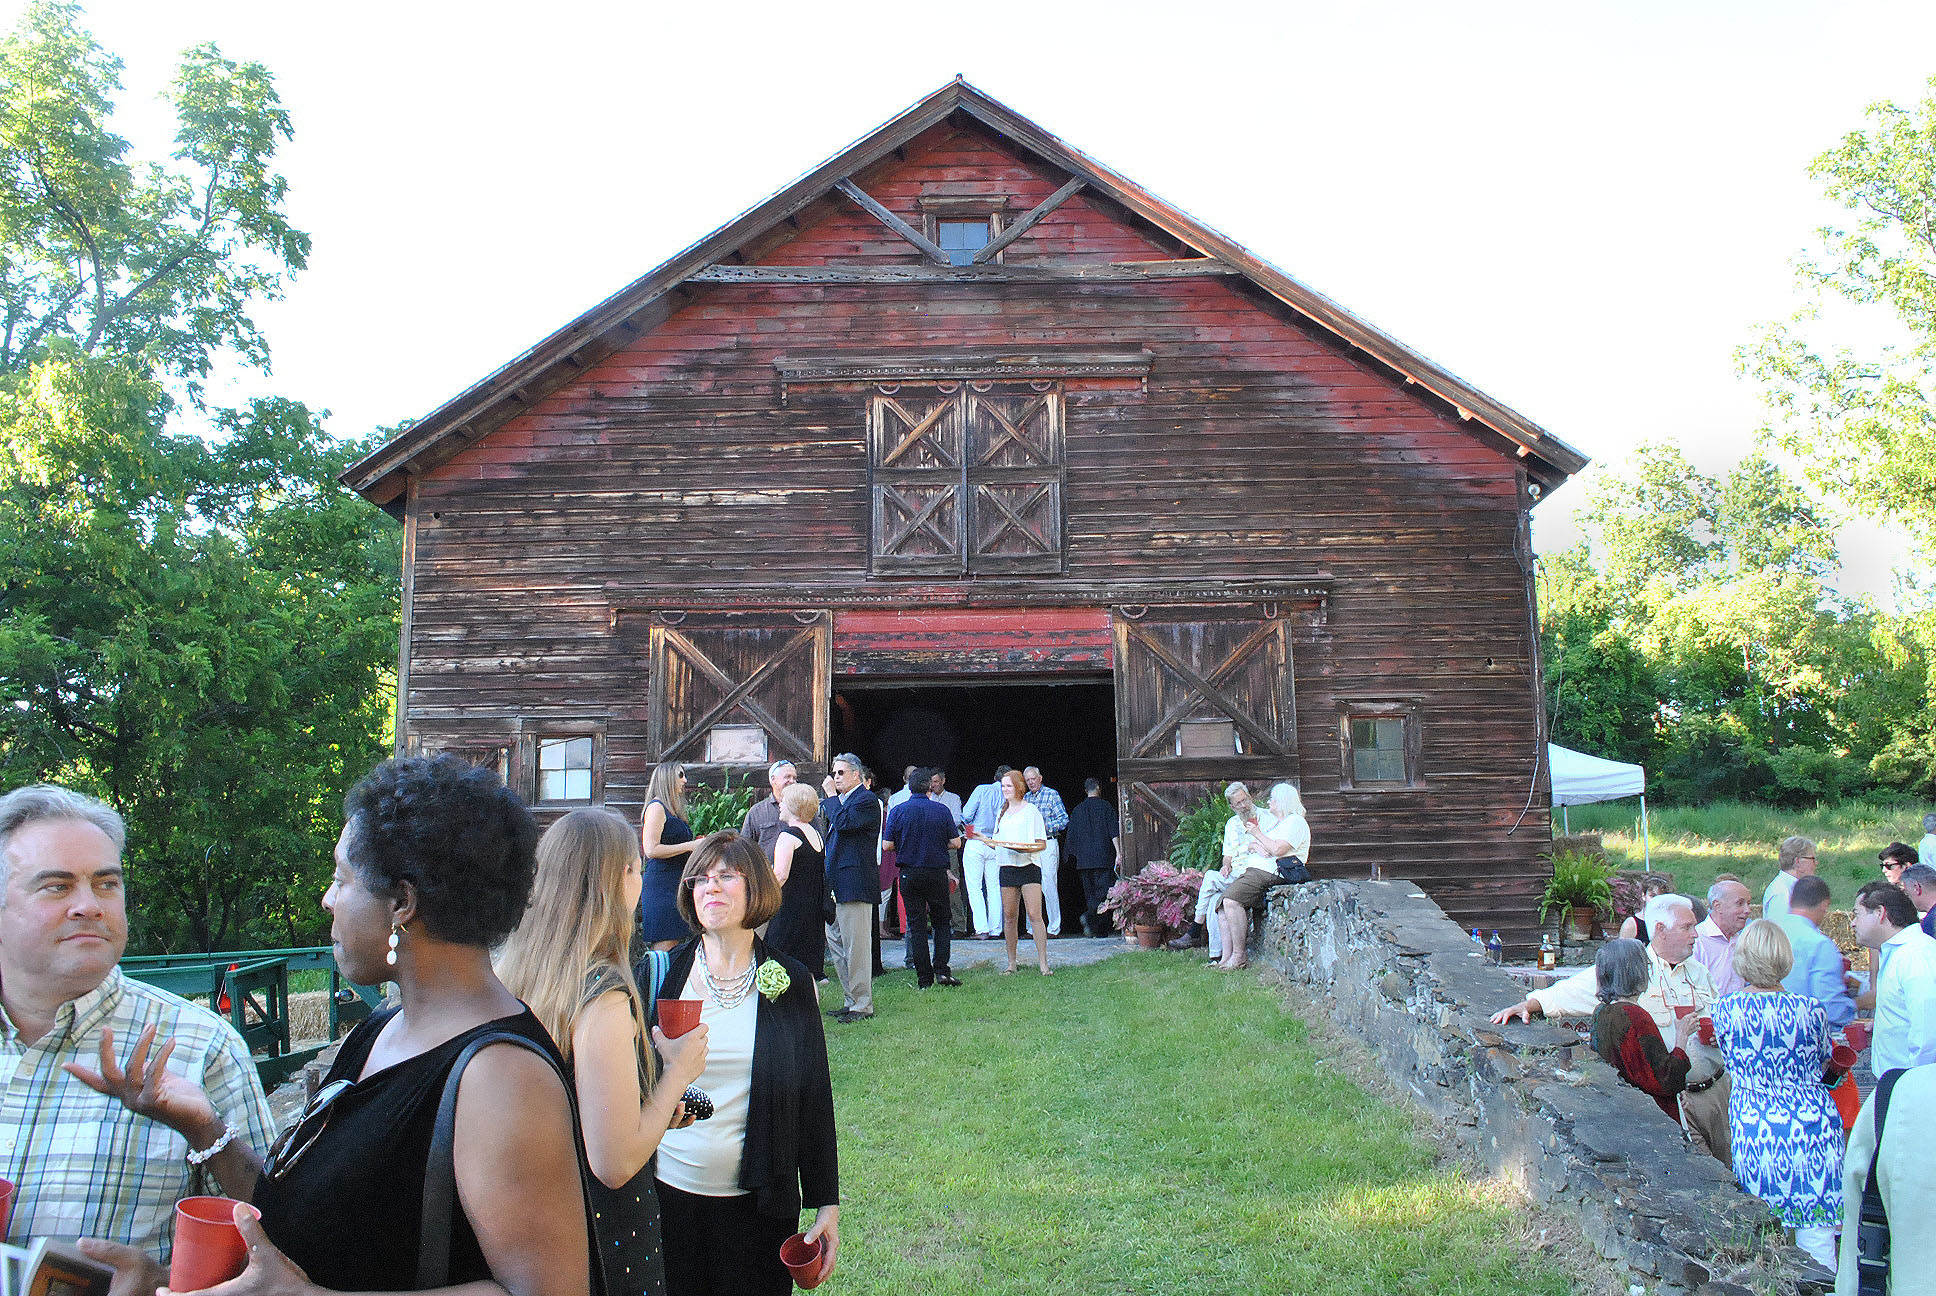 Summer Party at the Barn